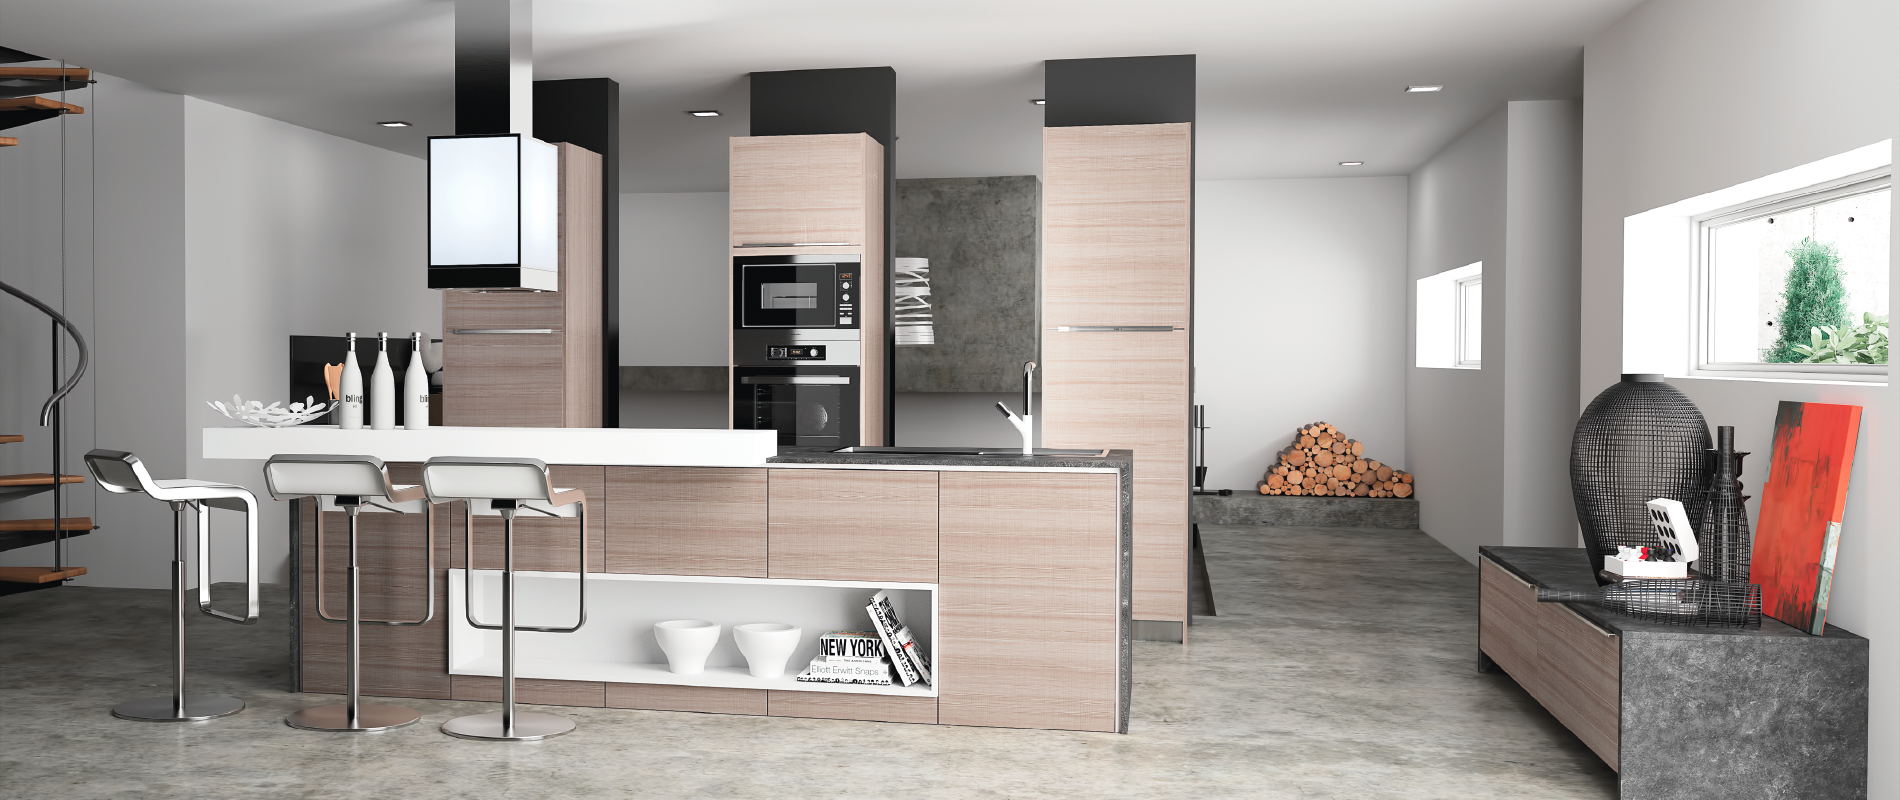 Cuisine contemporaine de qualit monza 2 haut de gamme for Cuisine amenagee design